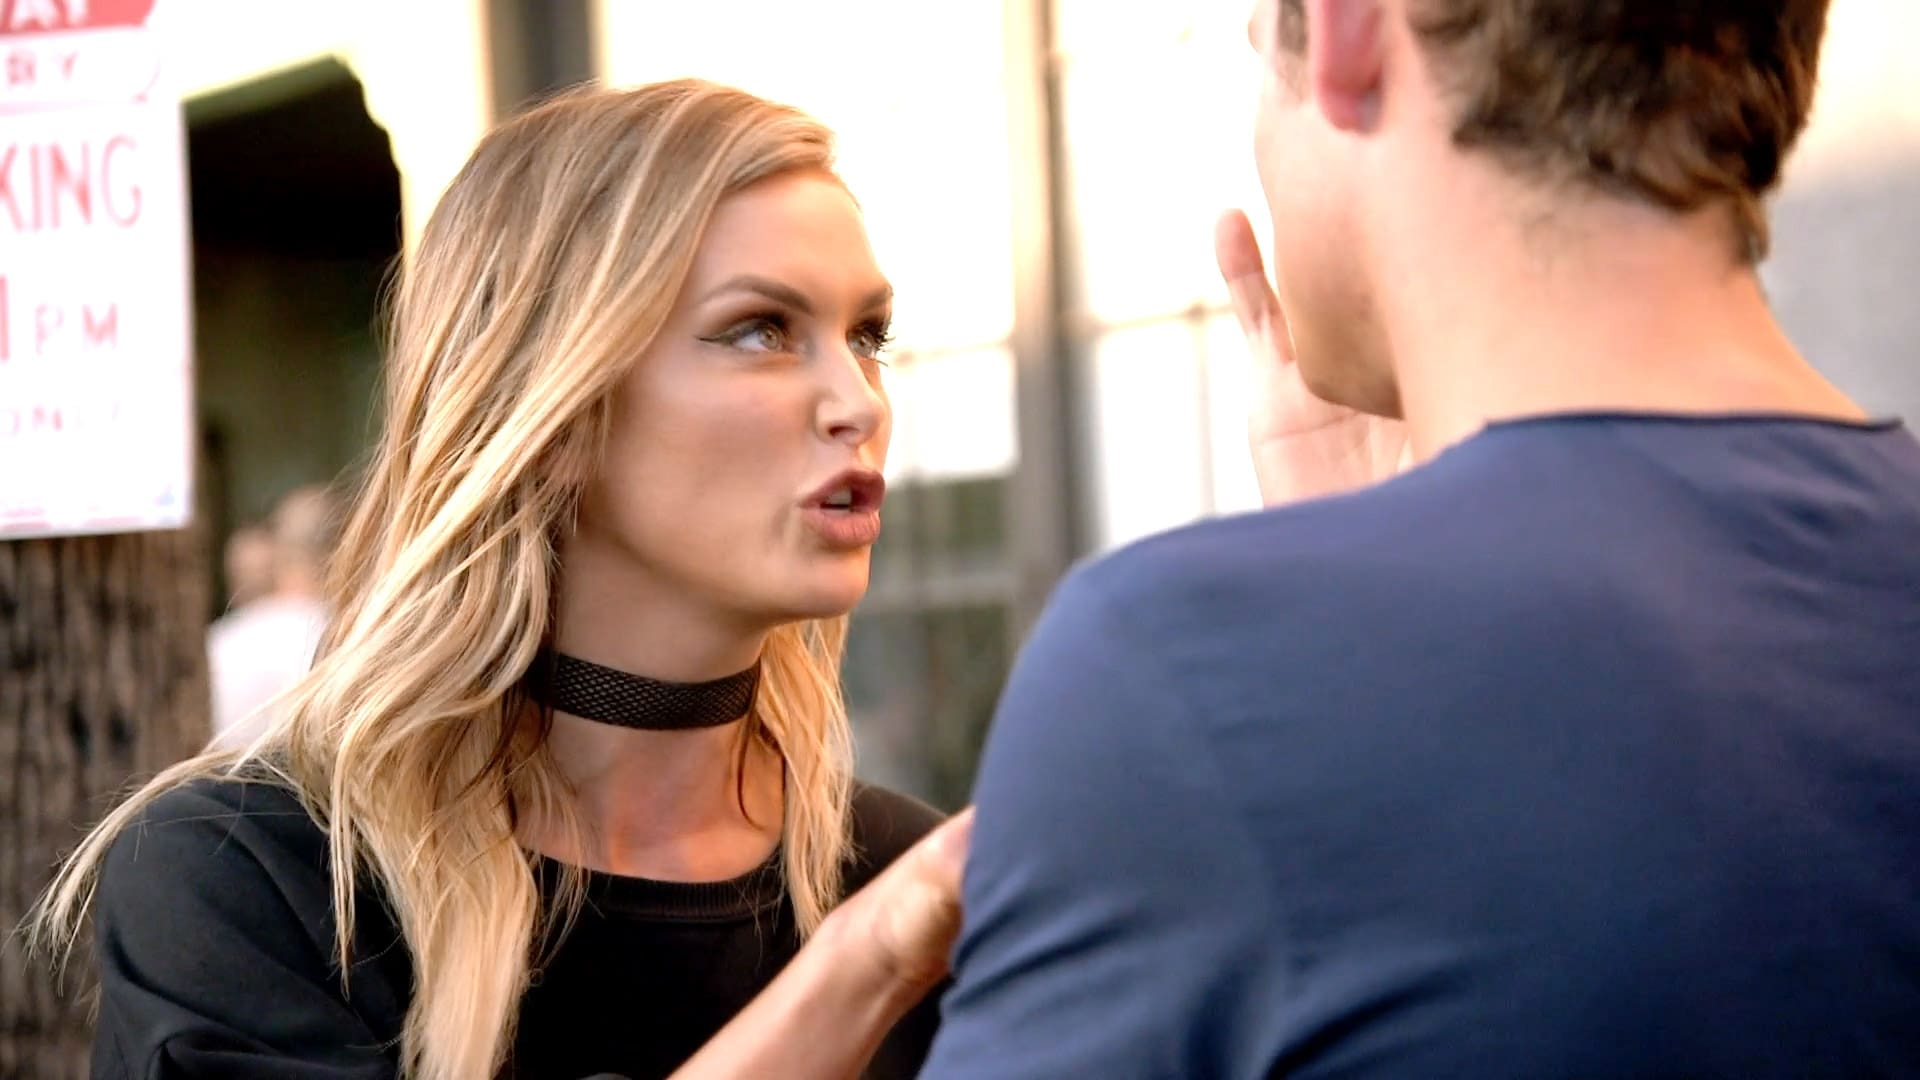 Vanderpump Rules: It's Not About The Pasta (2018) - Backdrops